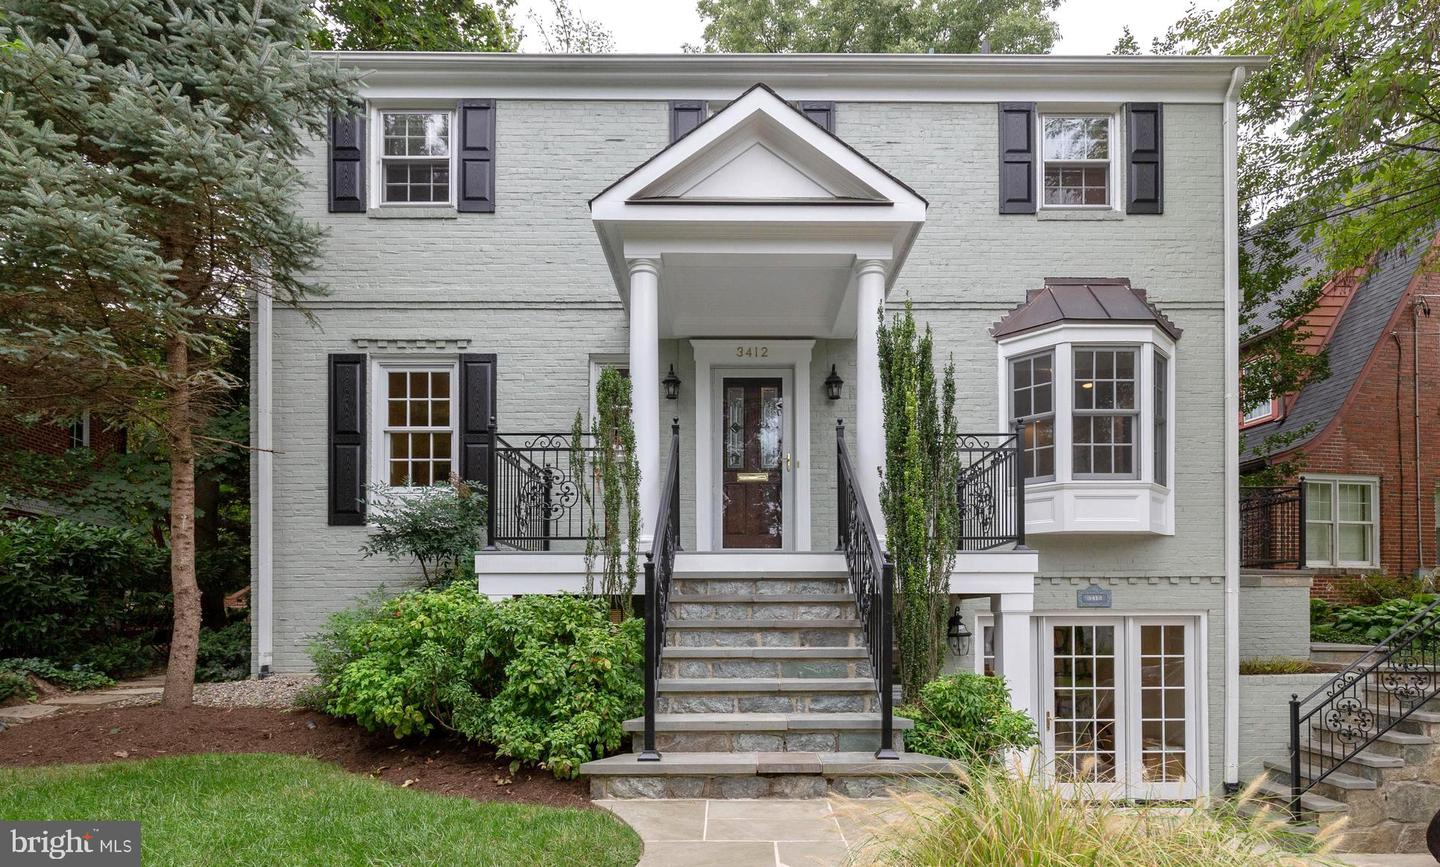 3412 Shepherd St Chevy Chase, MD 20815